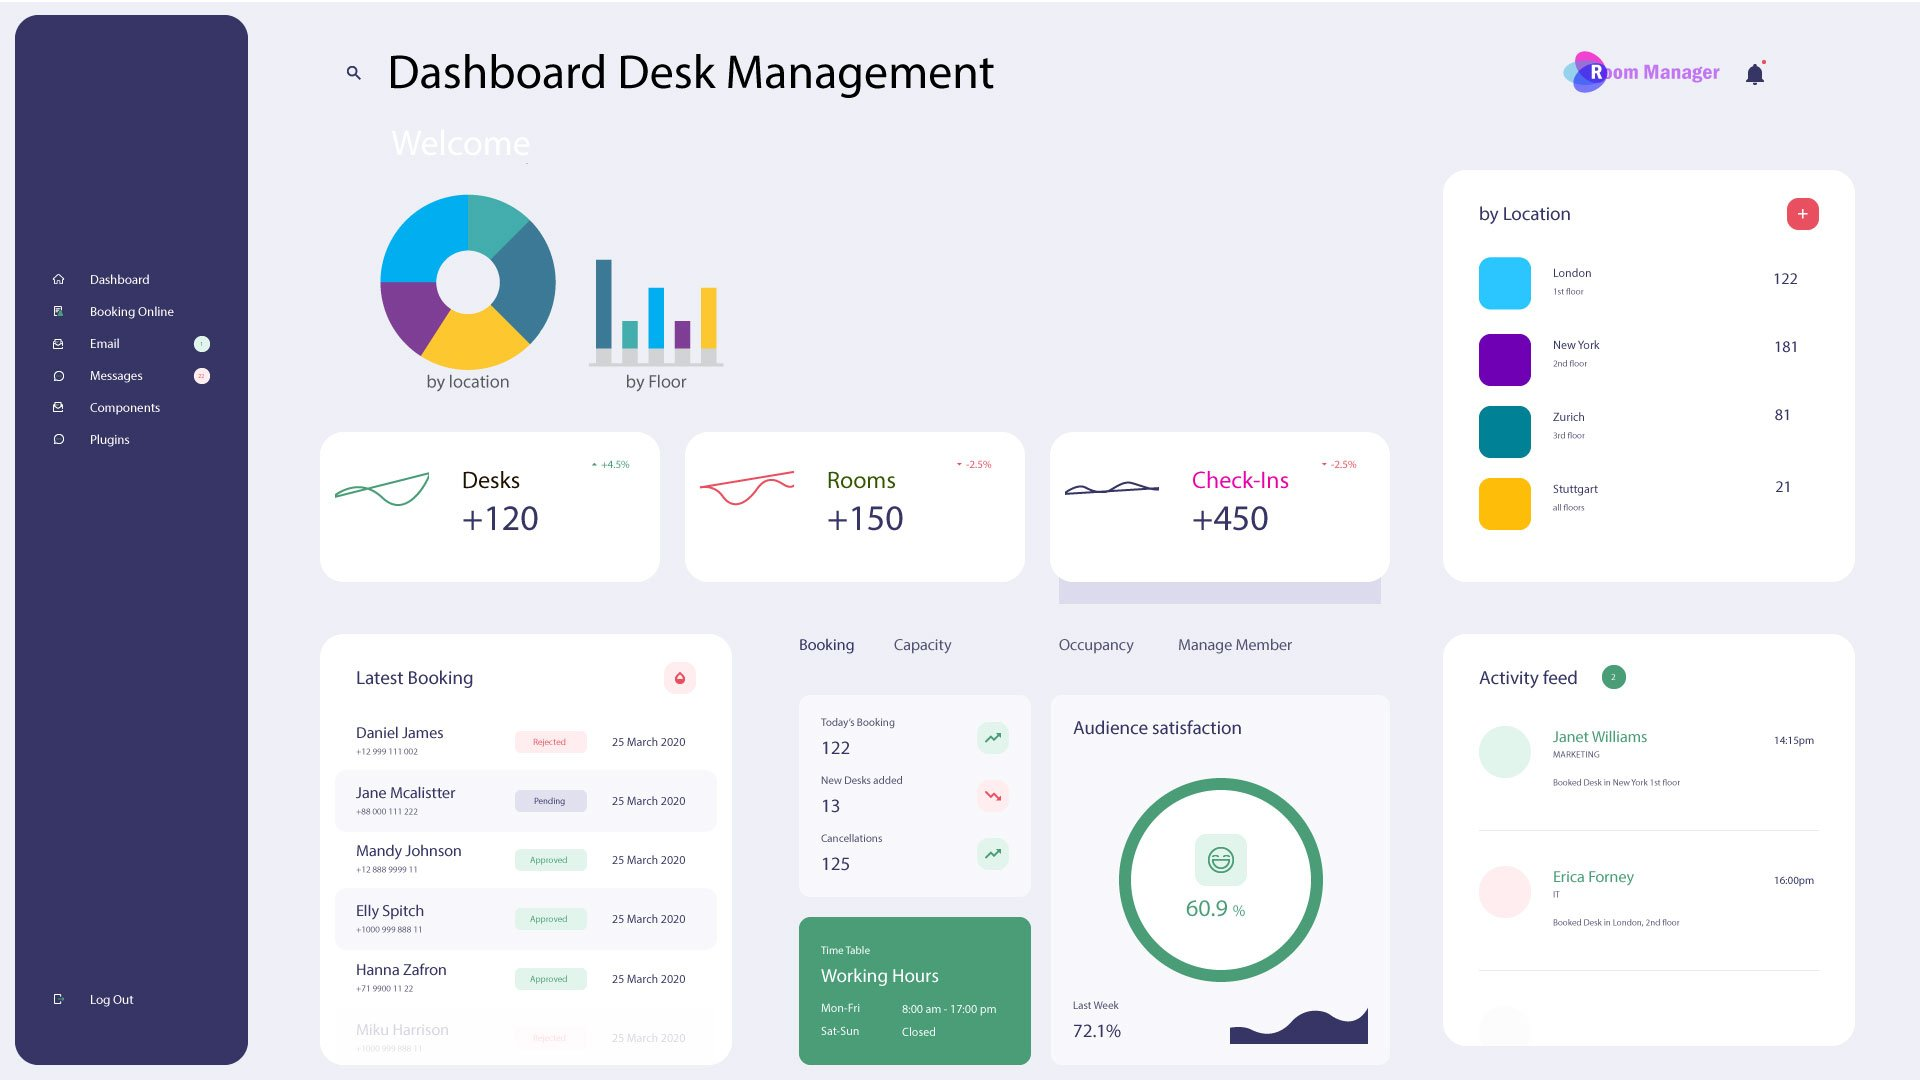 Desk Management Analytics